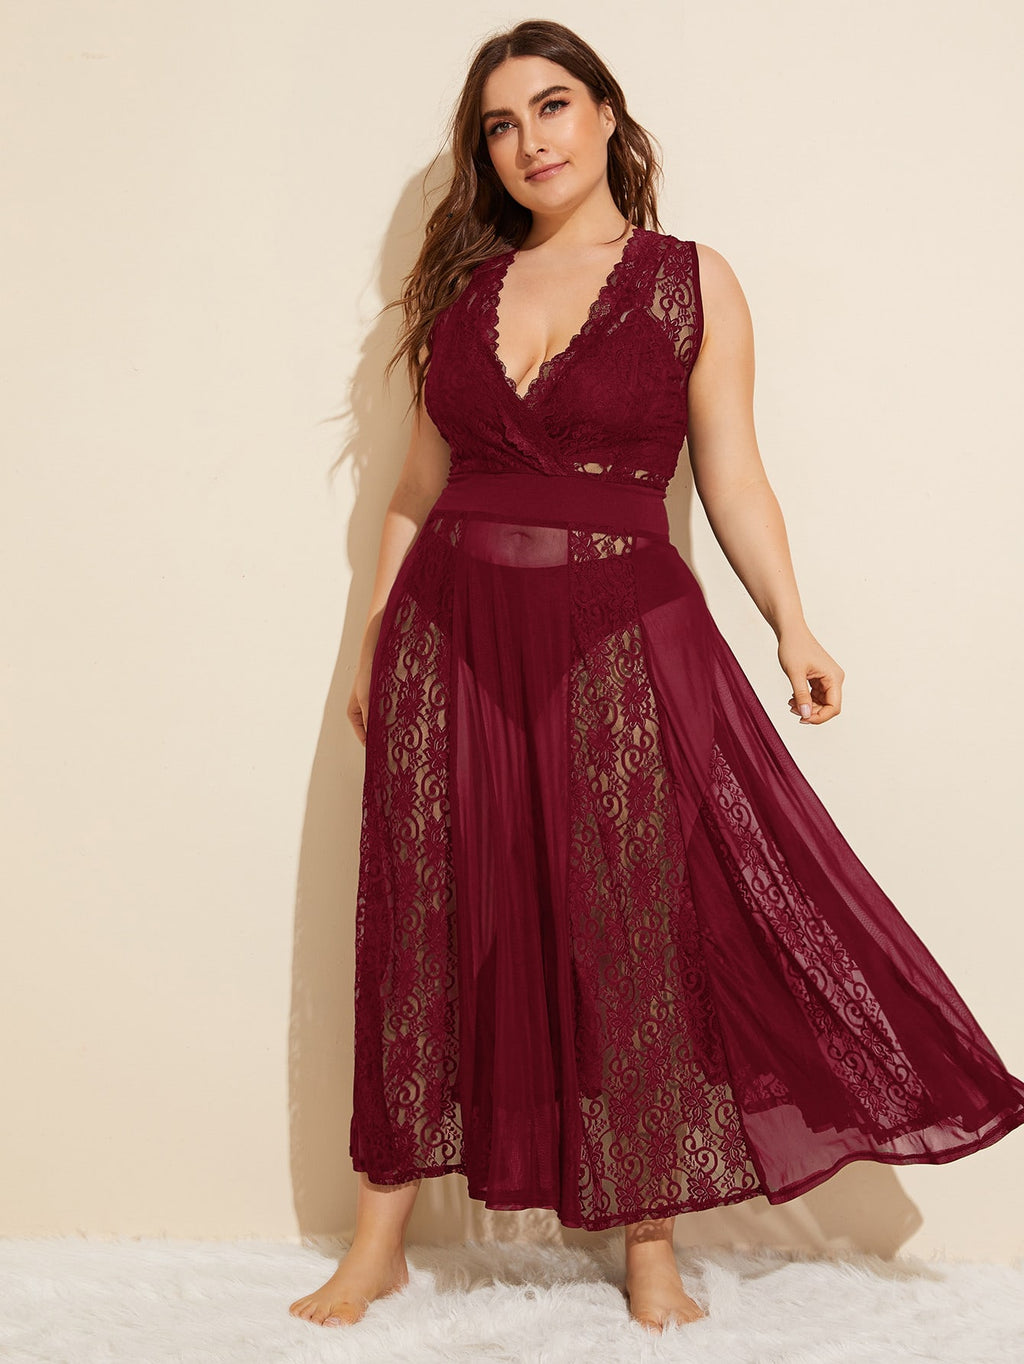 Plus Size Sexy Contrast Mesh Lace Dress